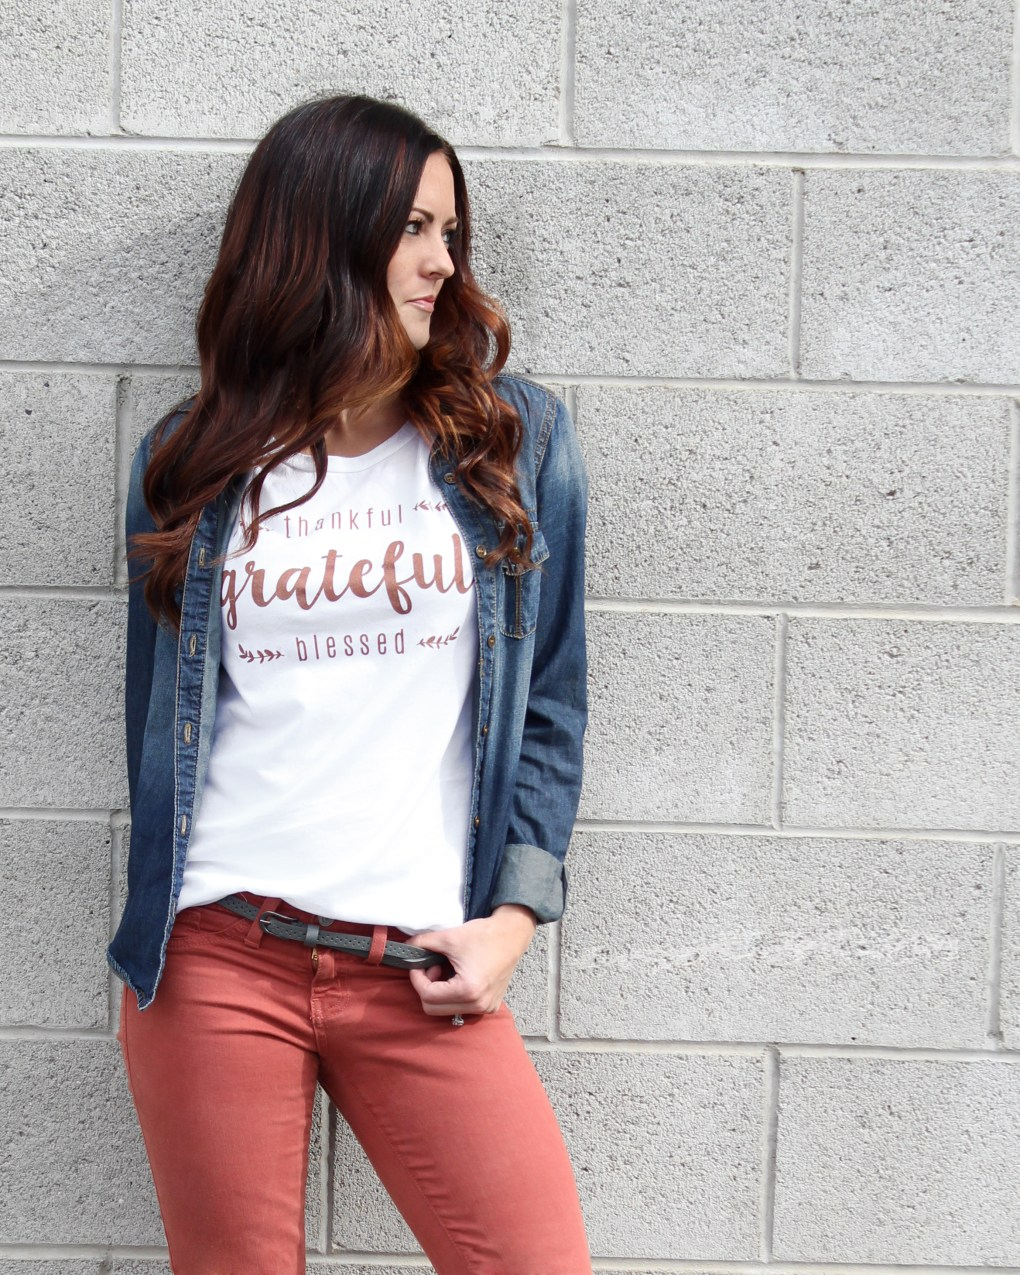 Perfect Thanksgiving shirt. Share how thankful, grateful and blessed you are with others around you. Get more info at sugarcoatedhousewife.com